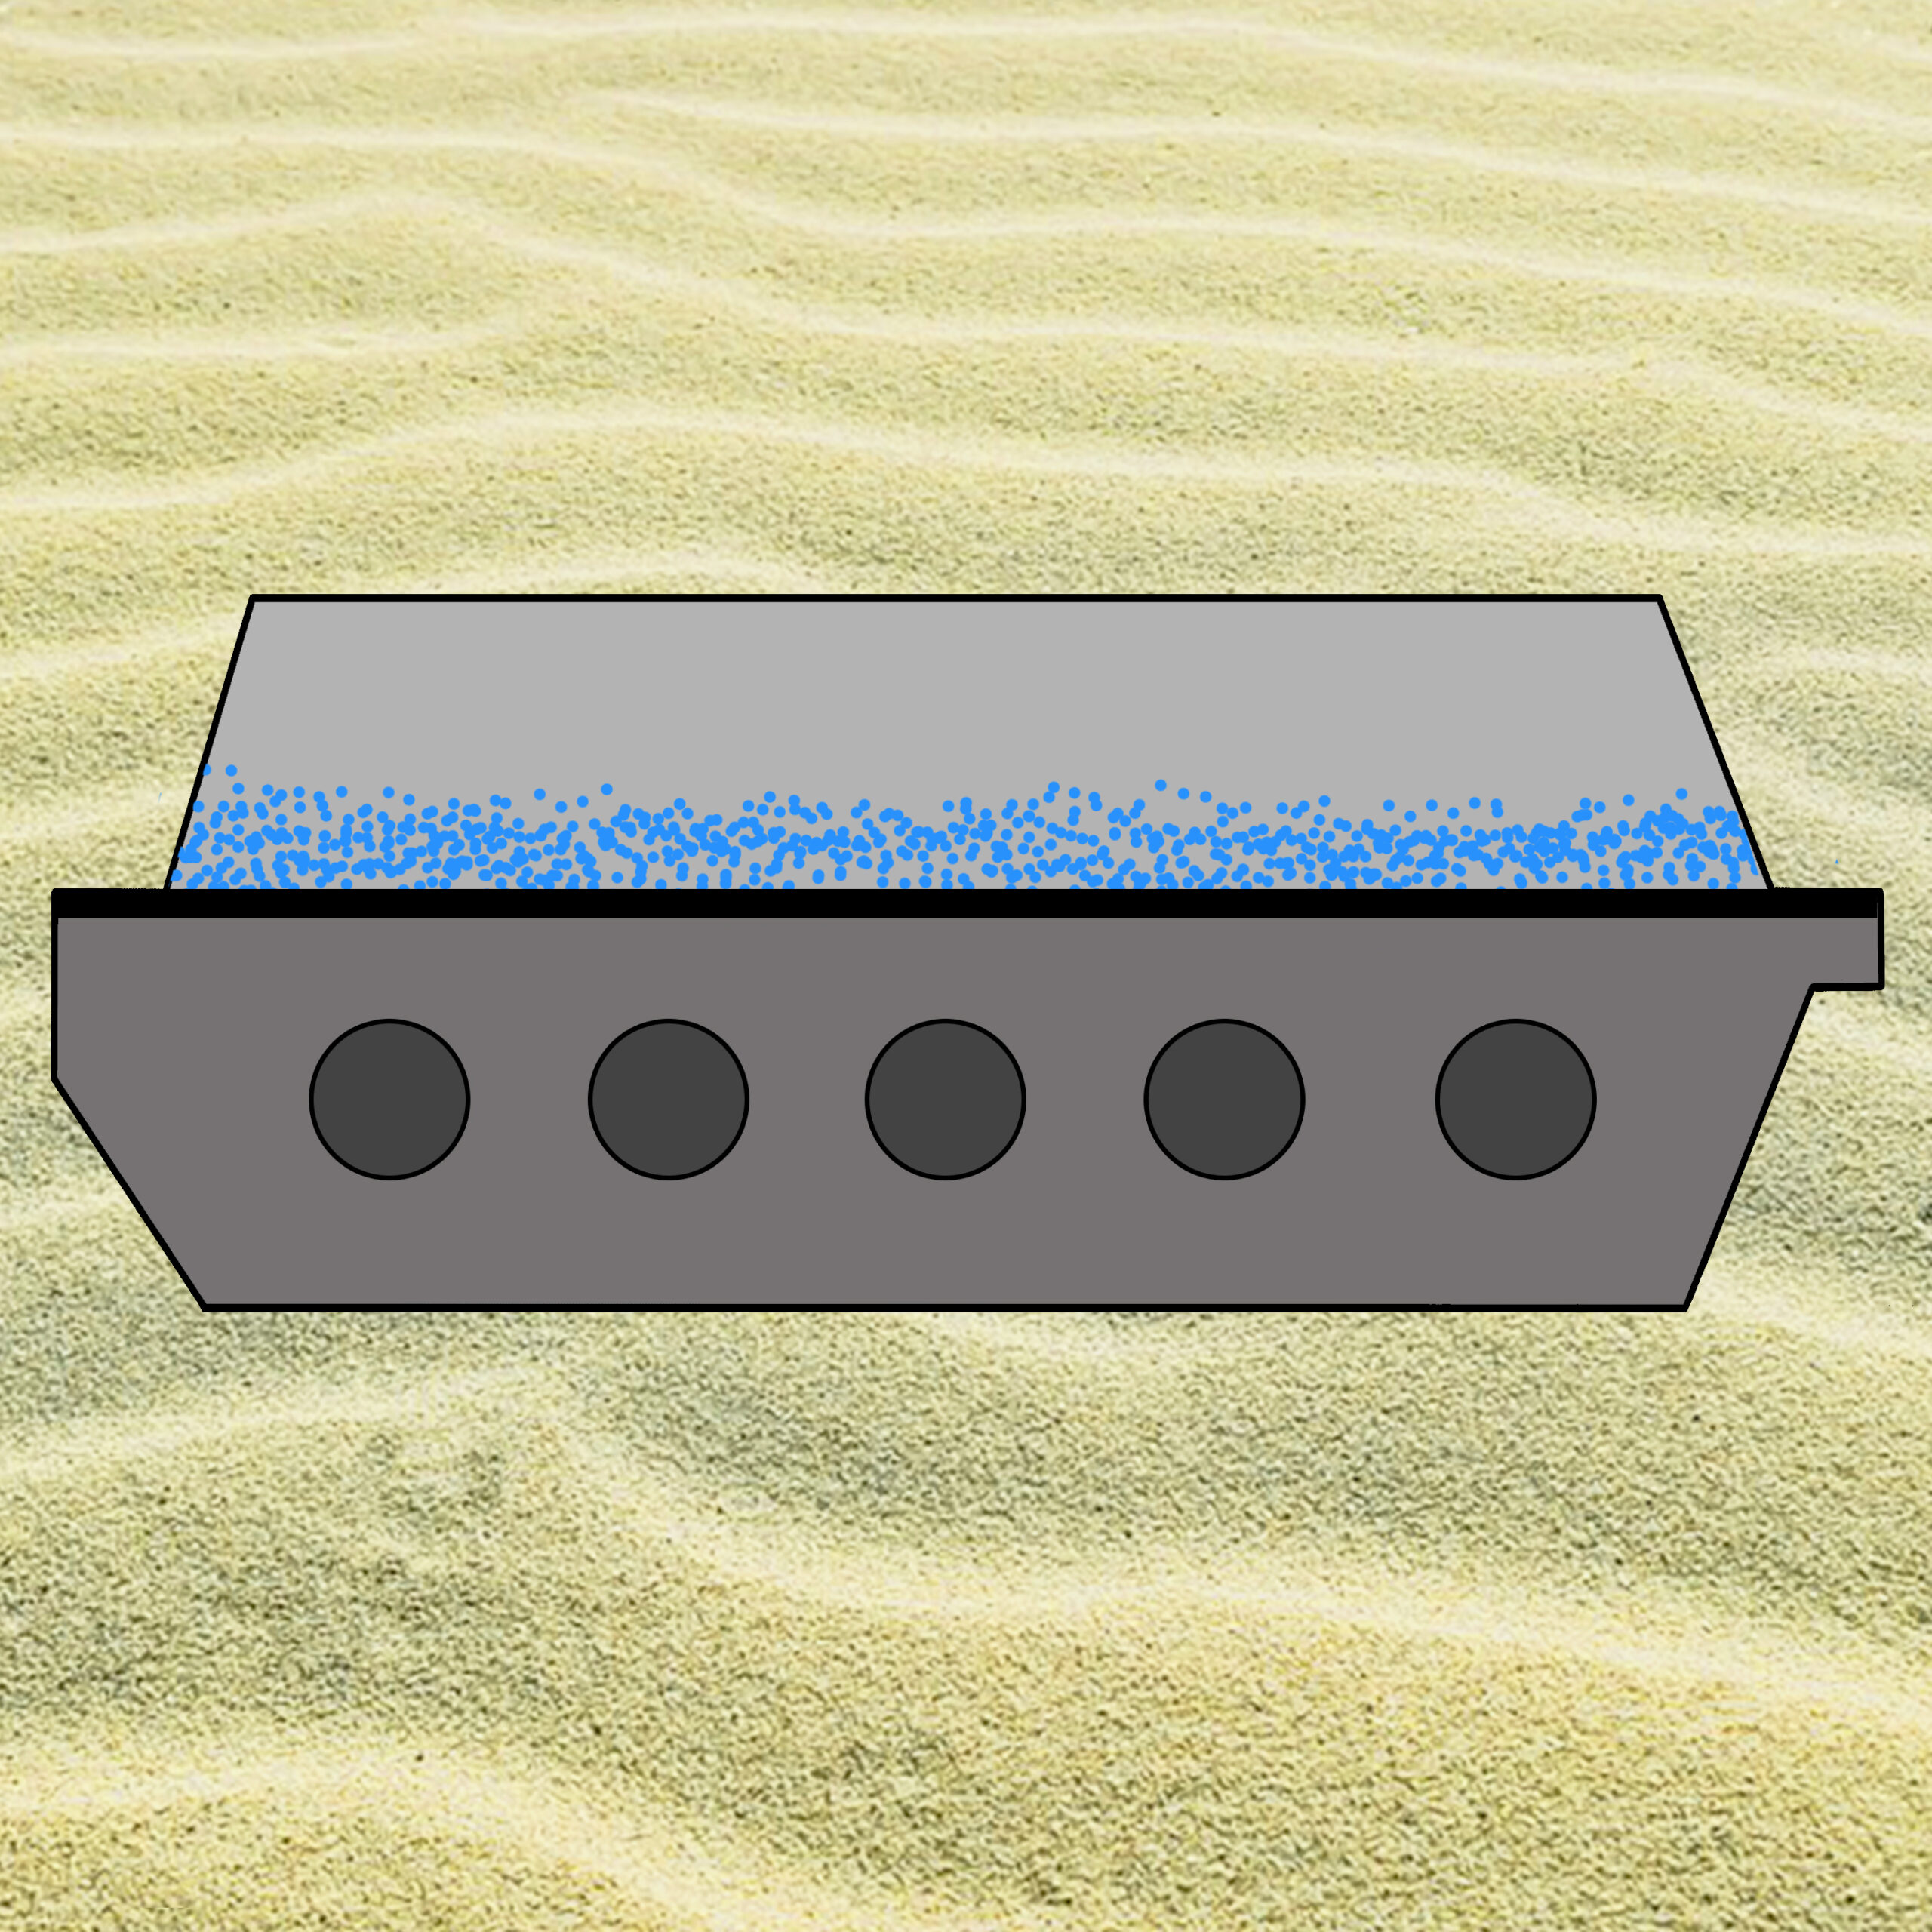 Fluidization Creates Both Quicksand and Fluid Bed Processing